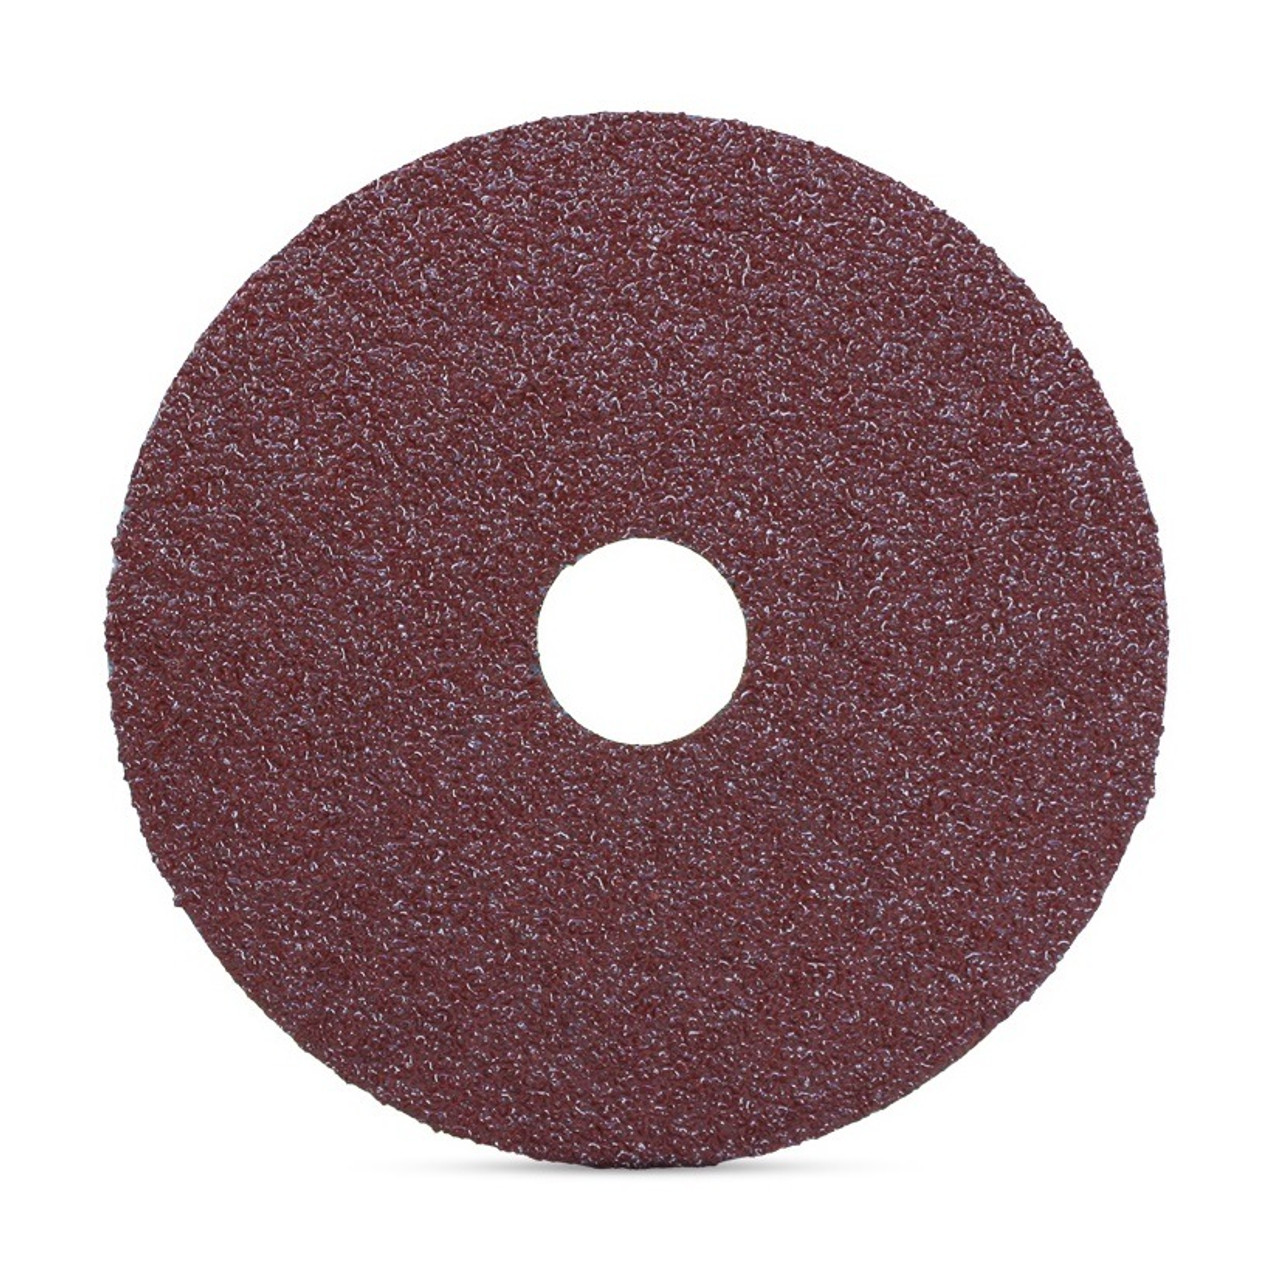 4-Inch x 5//8-Inch Aluminum Oxide Resin Fiber Discs Center Hole 80 Grit 5 Pcs